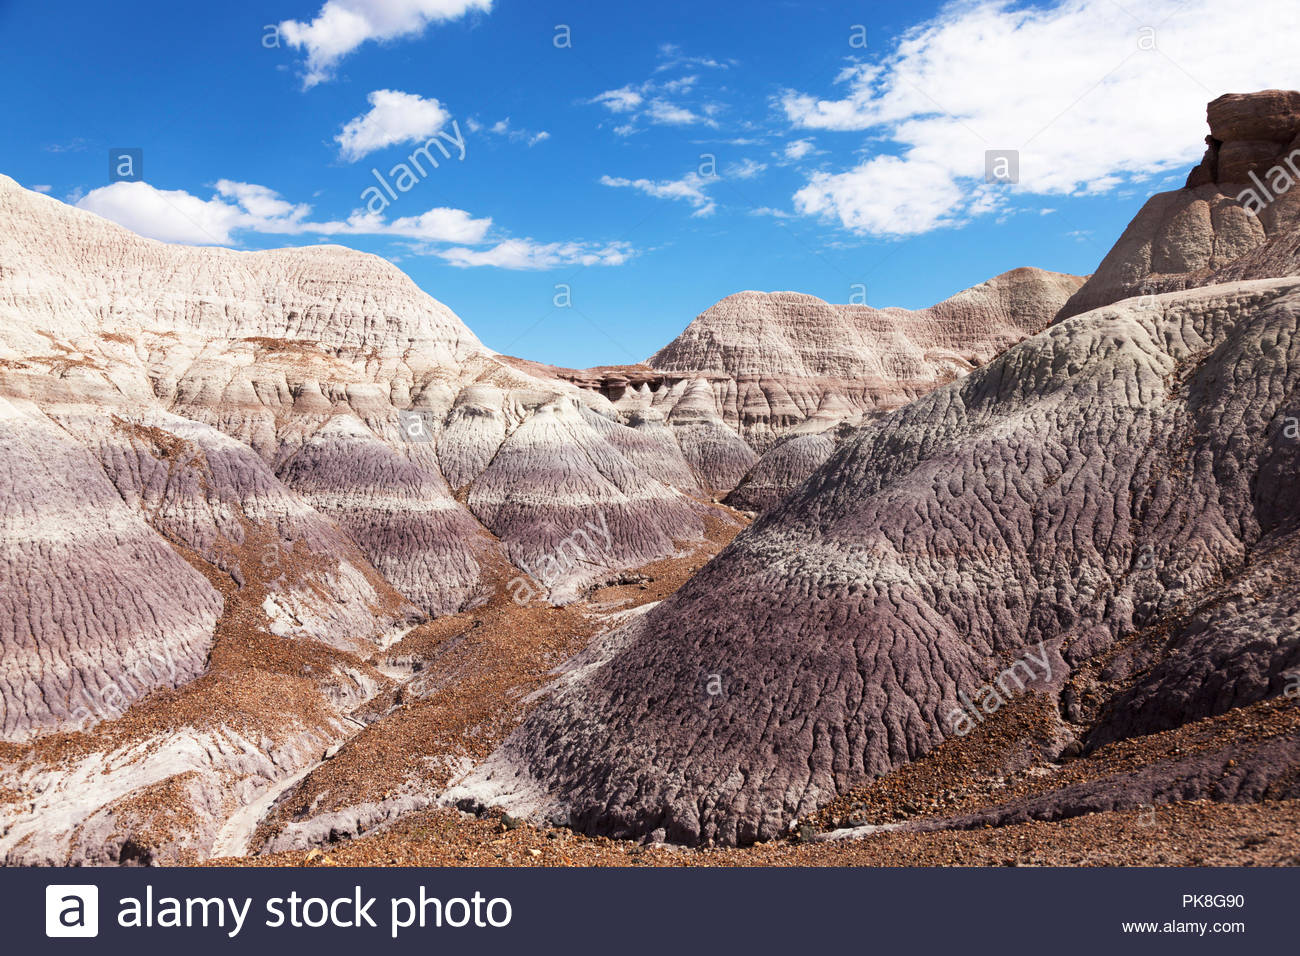 along-blue-forest-trail-blue-mesa-petrified-forest-national-park-arizona-usa-PK8G90.jpg